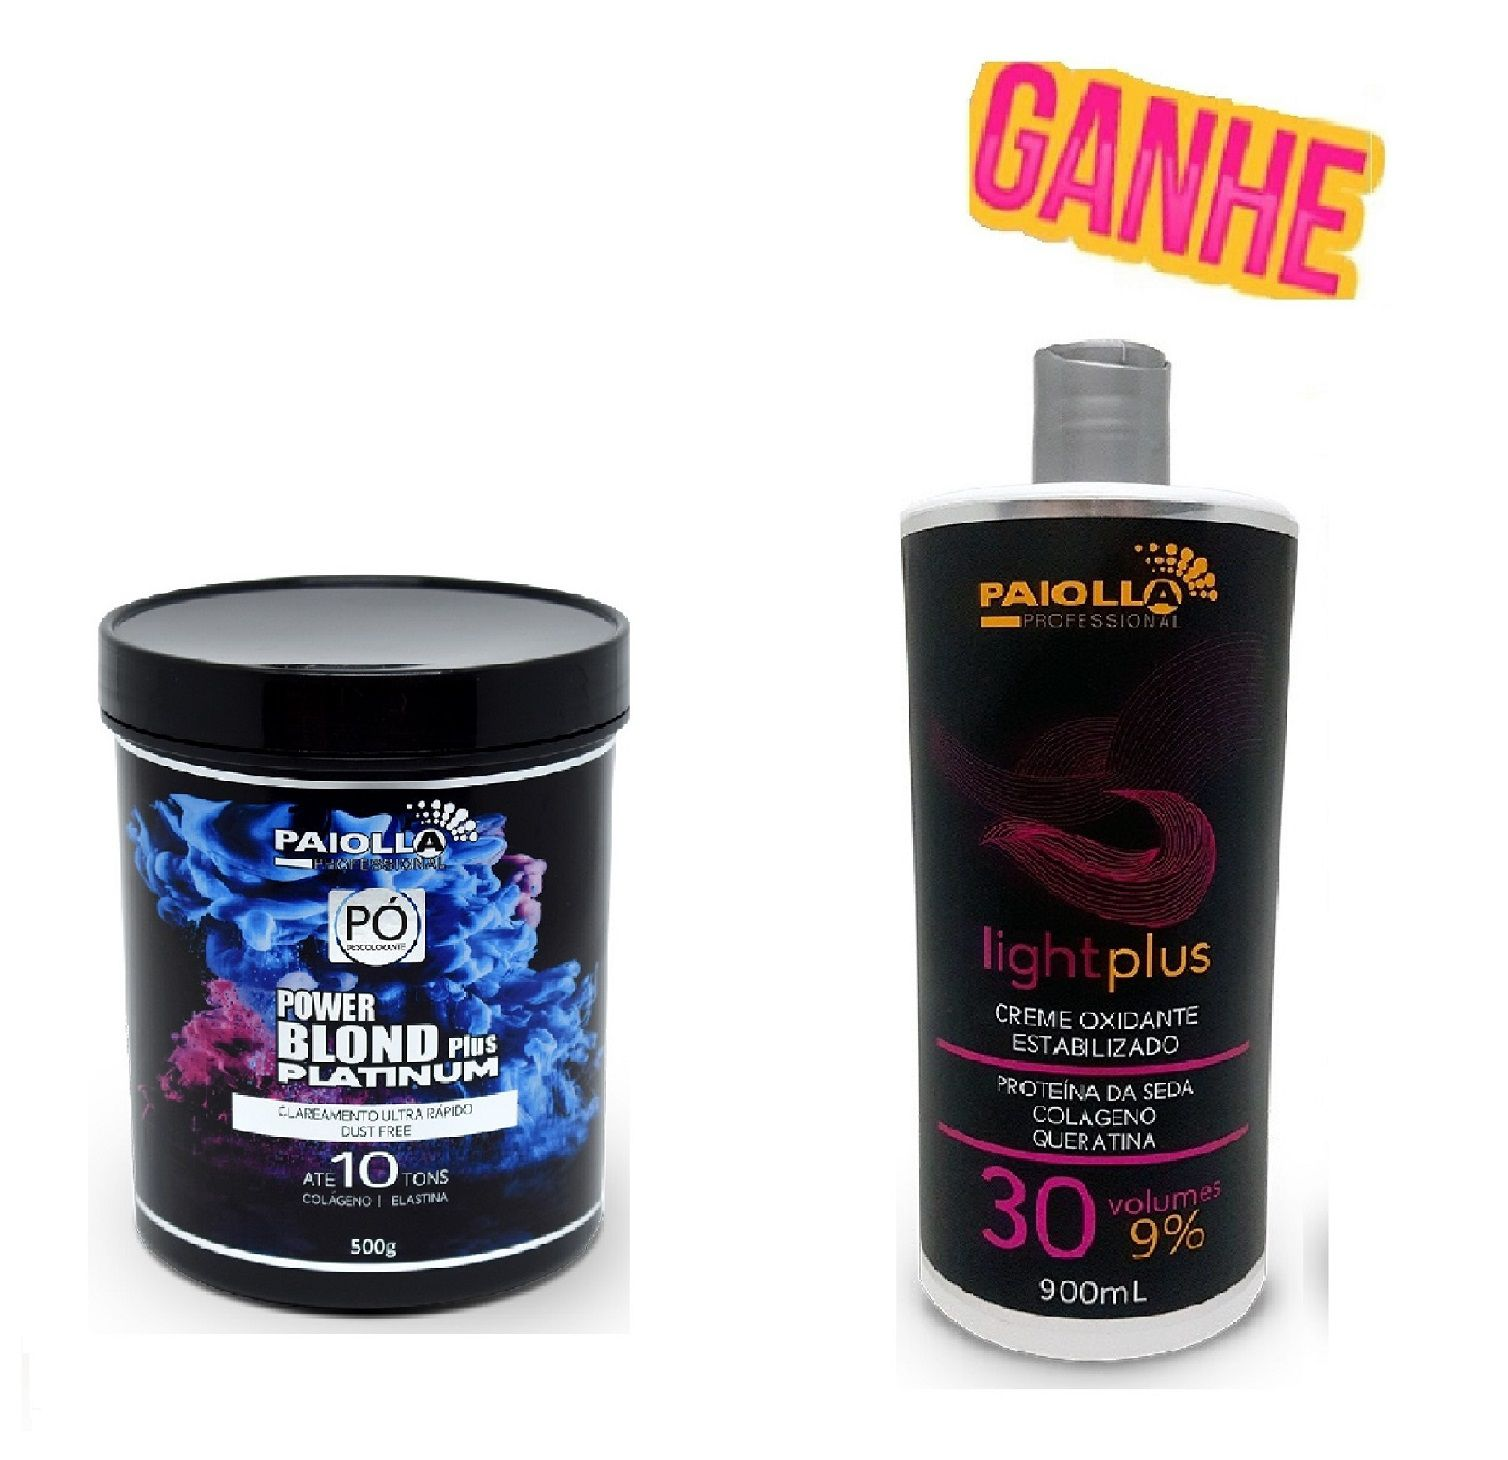 COMBO Pó Descolorante Power Blond Plus Platinum 500g + OX 30 Volumes GRÁTIS